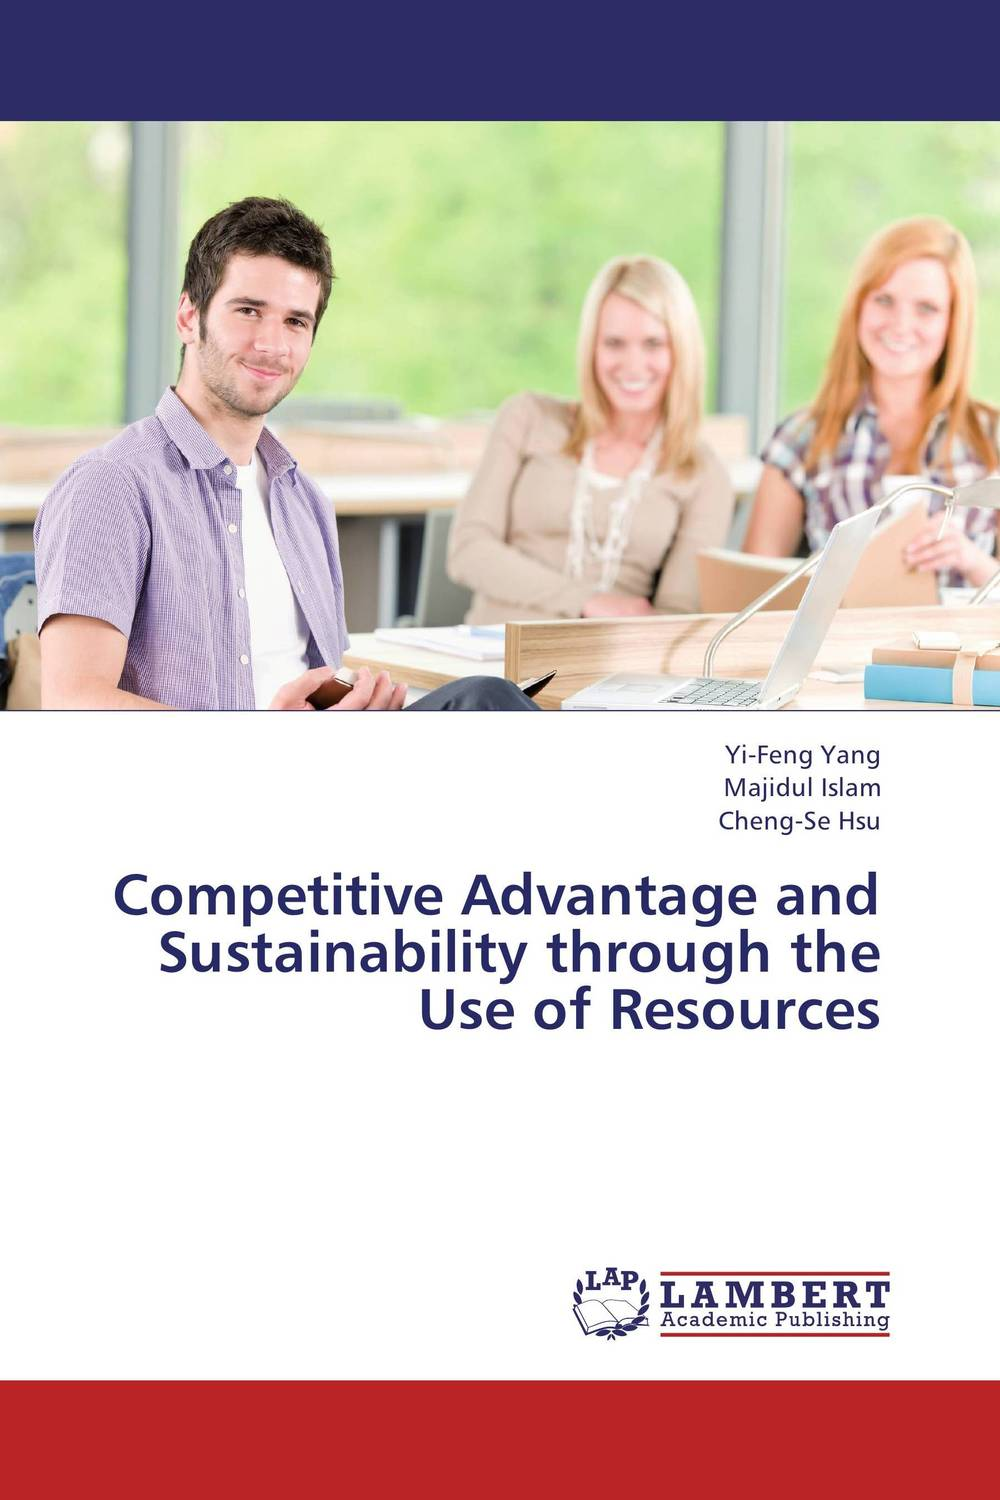 Competitive Advantage and Sustainability through the Use of Resources building value through human resources